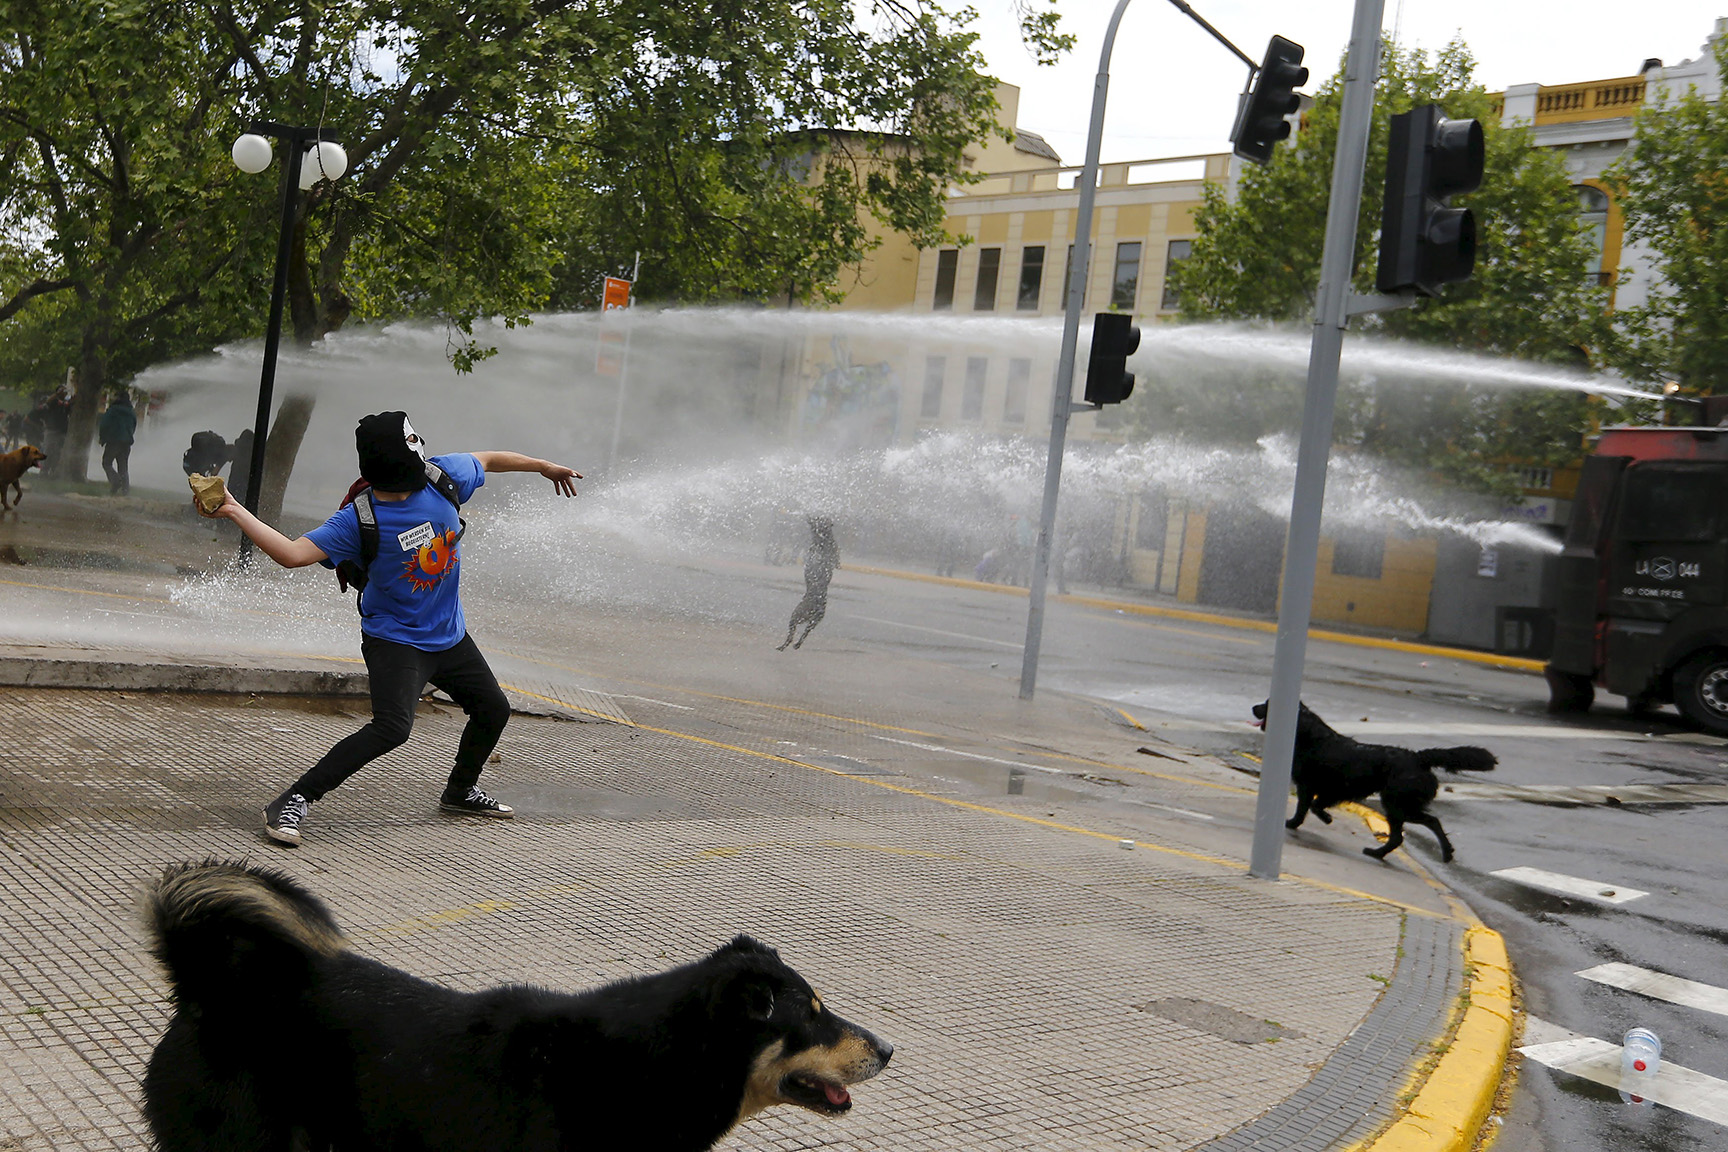 A Mapuche Indian activist prepares to throw a stone at riot police vehicle during a protest march against Columbus Day in downtown Santiago